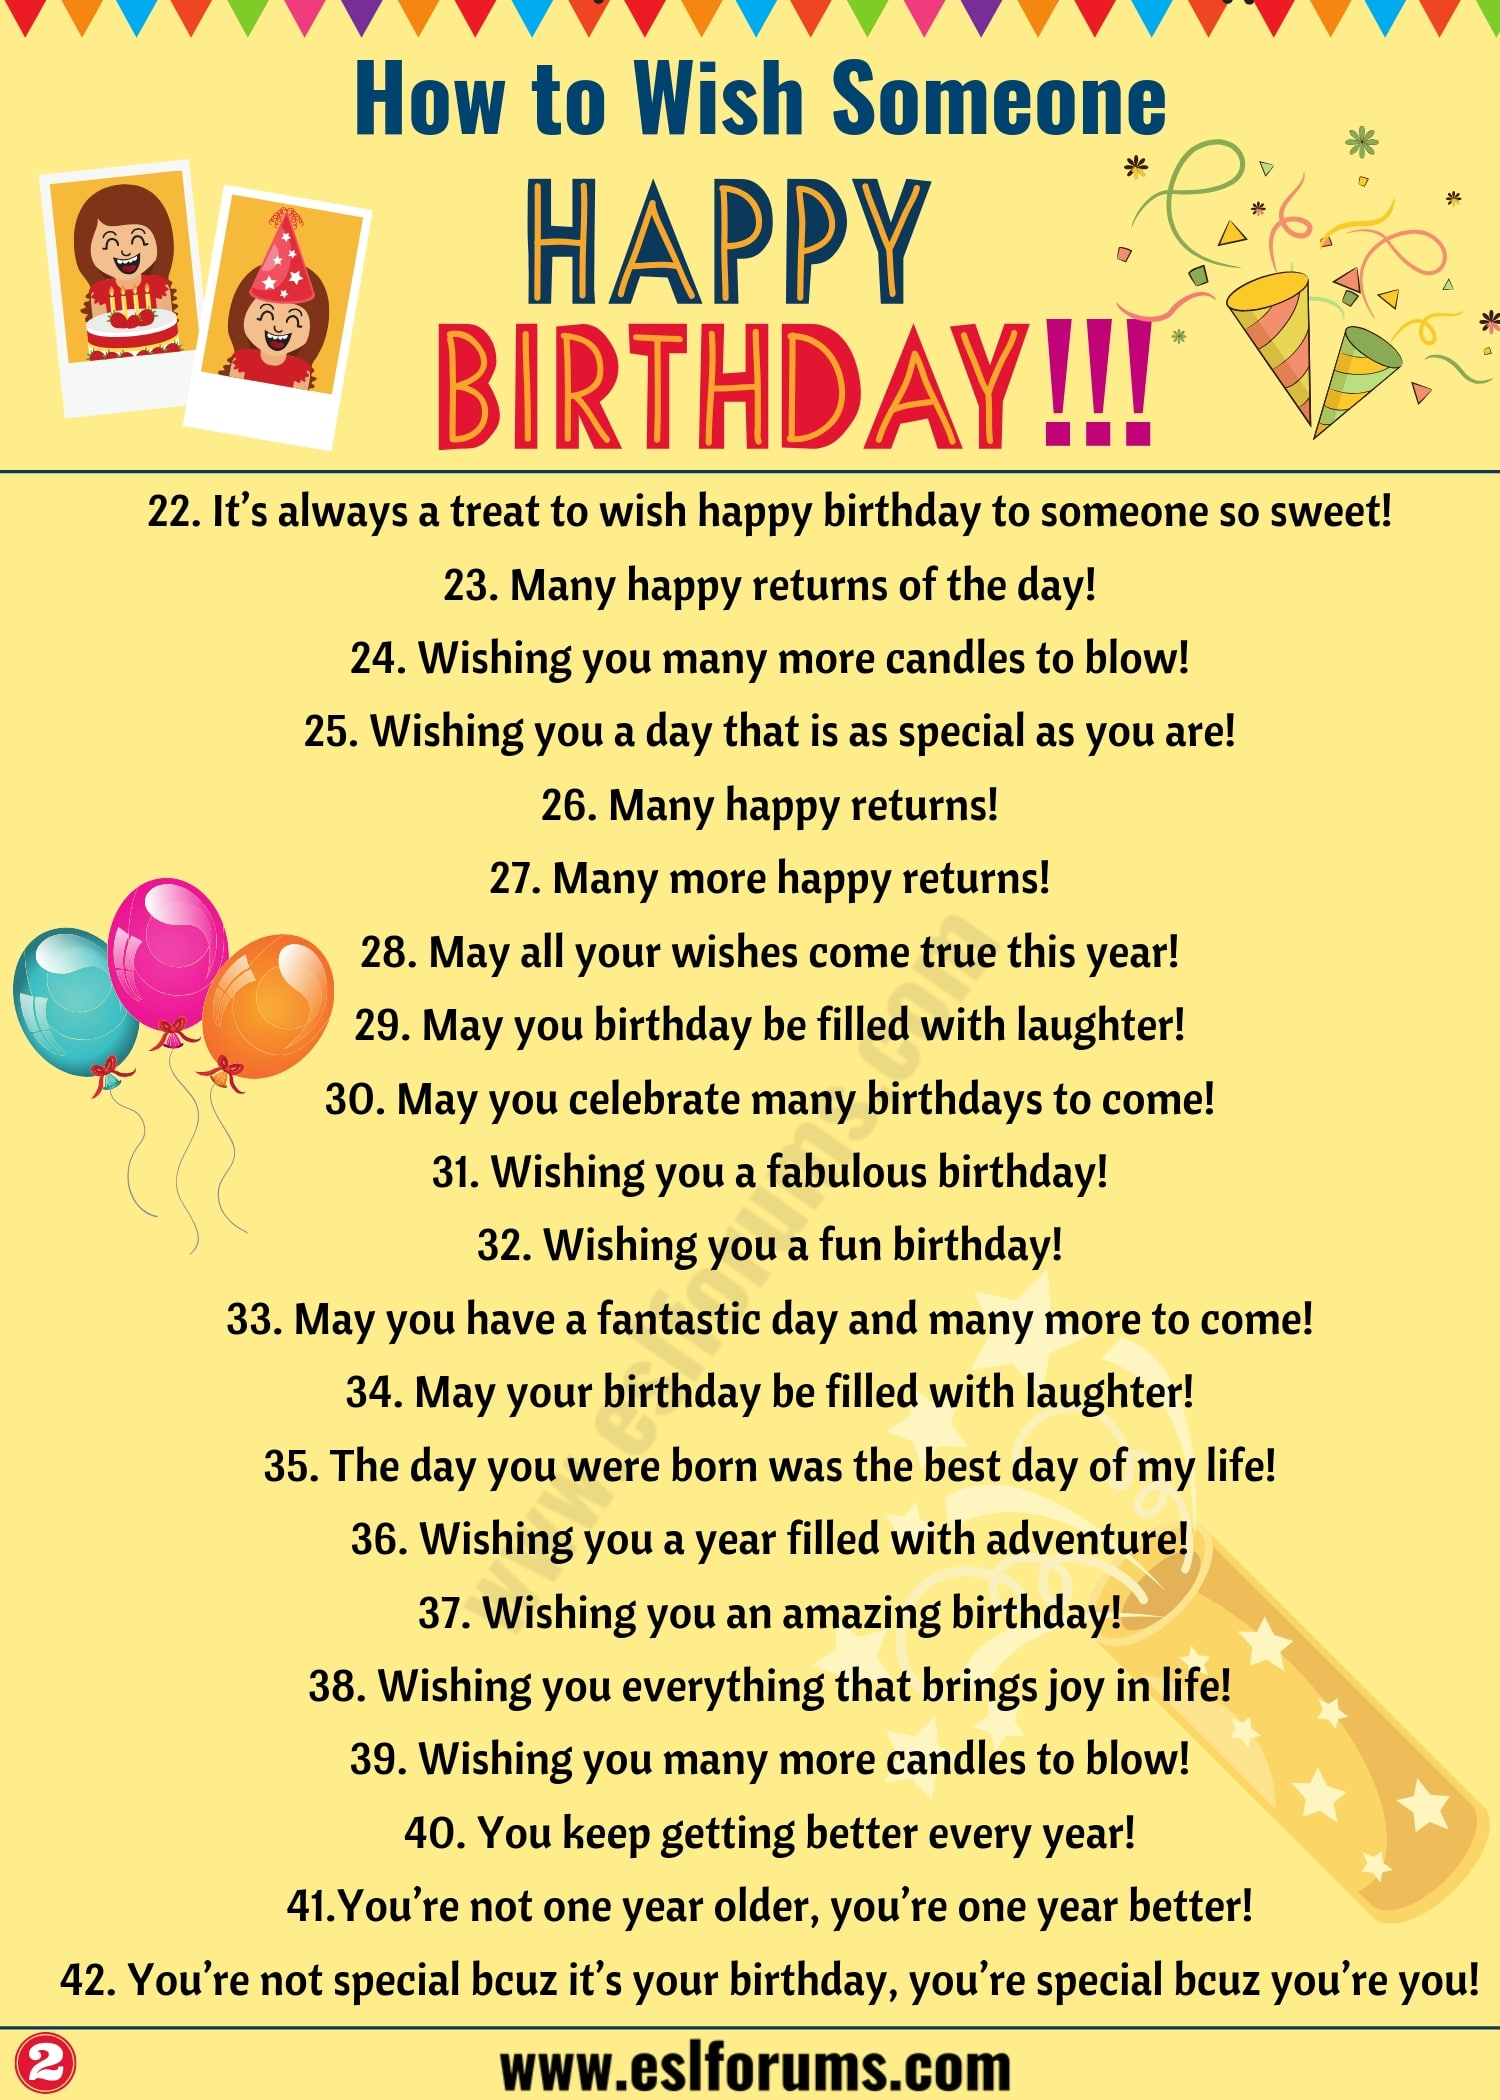 Birthday Wishes: 40+ Best Happy Birthday Wishes to Friends & Others!